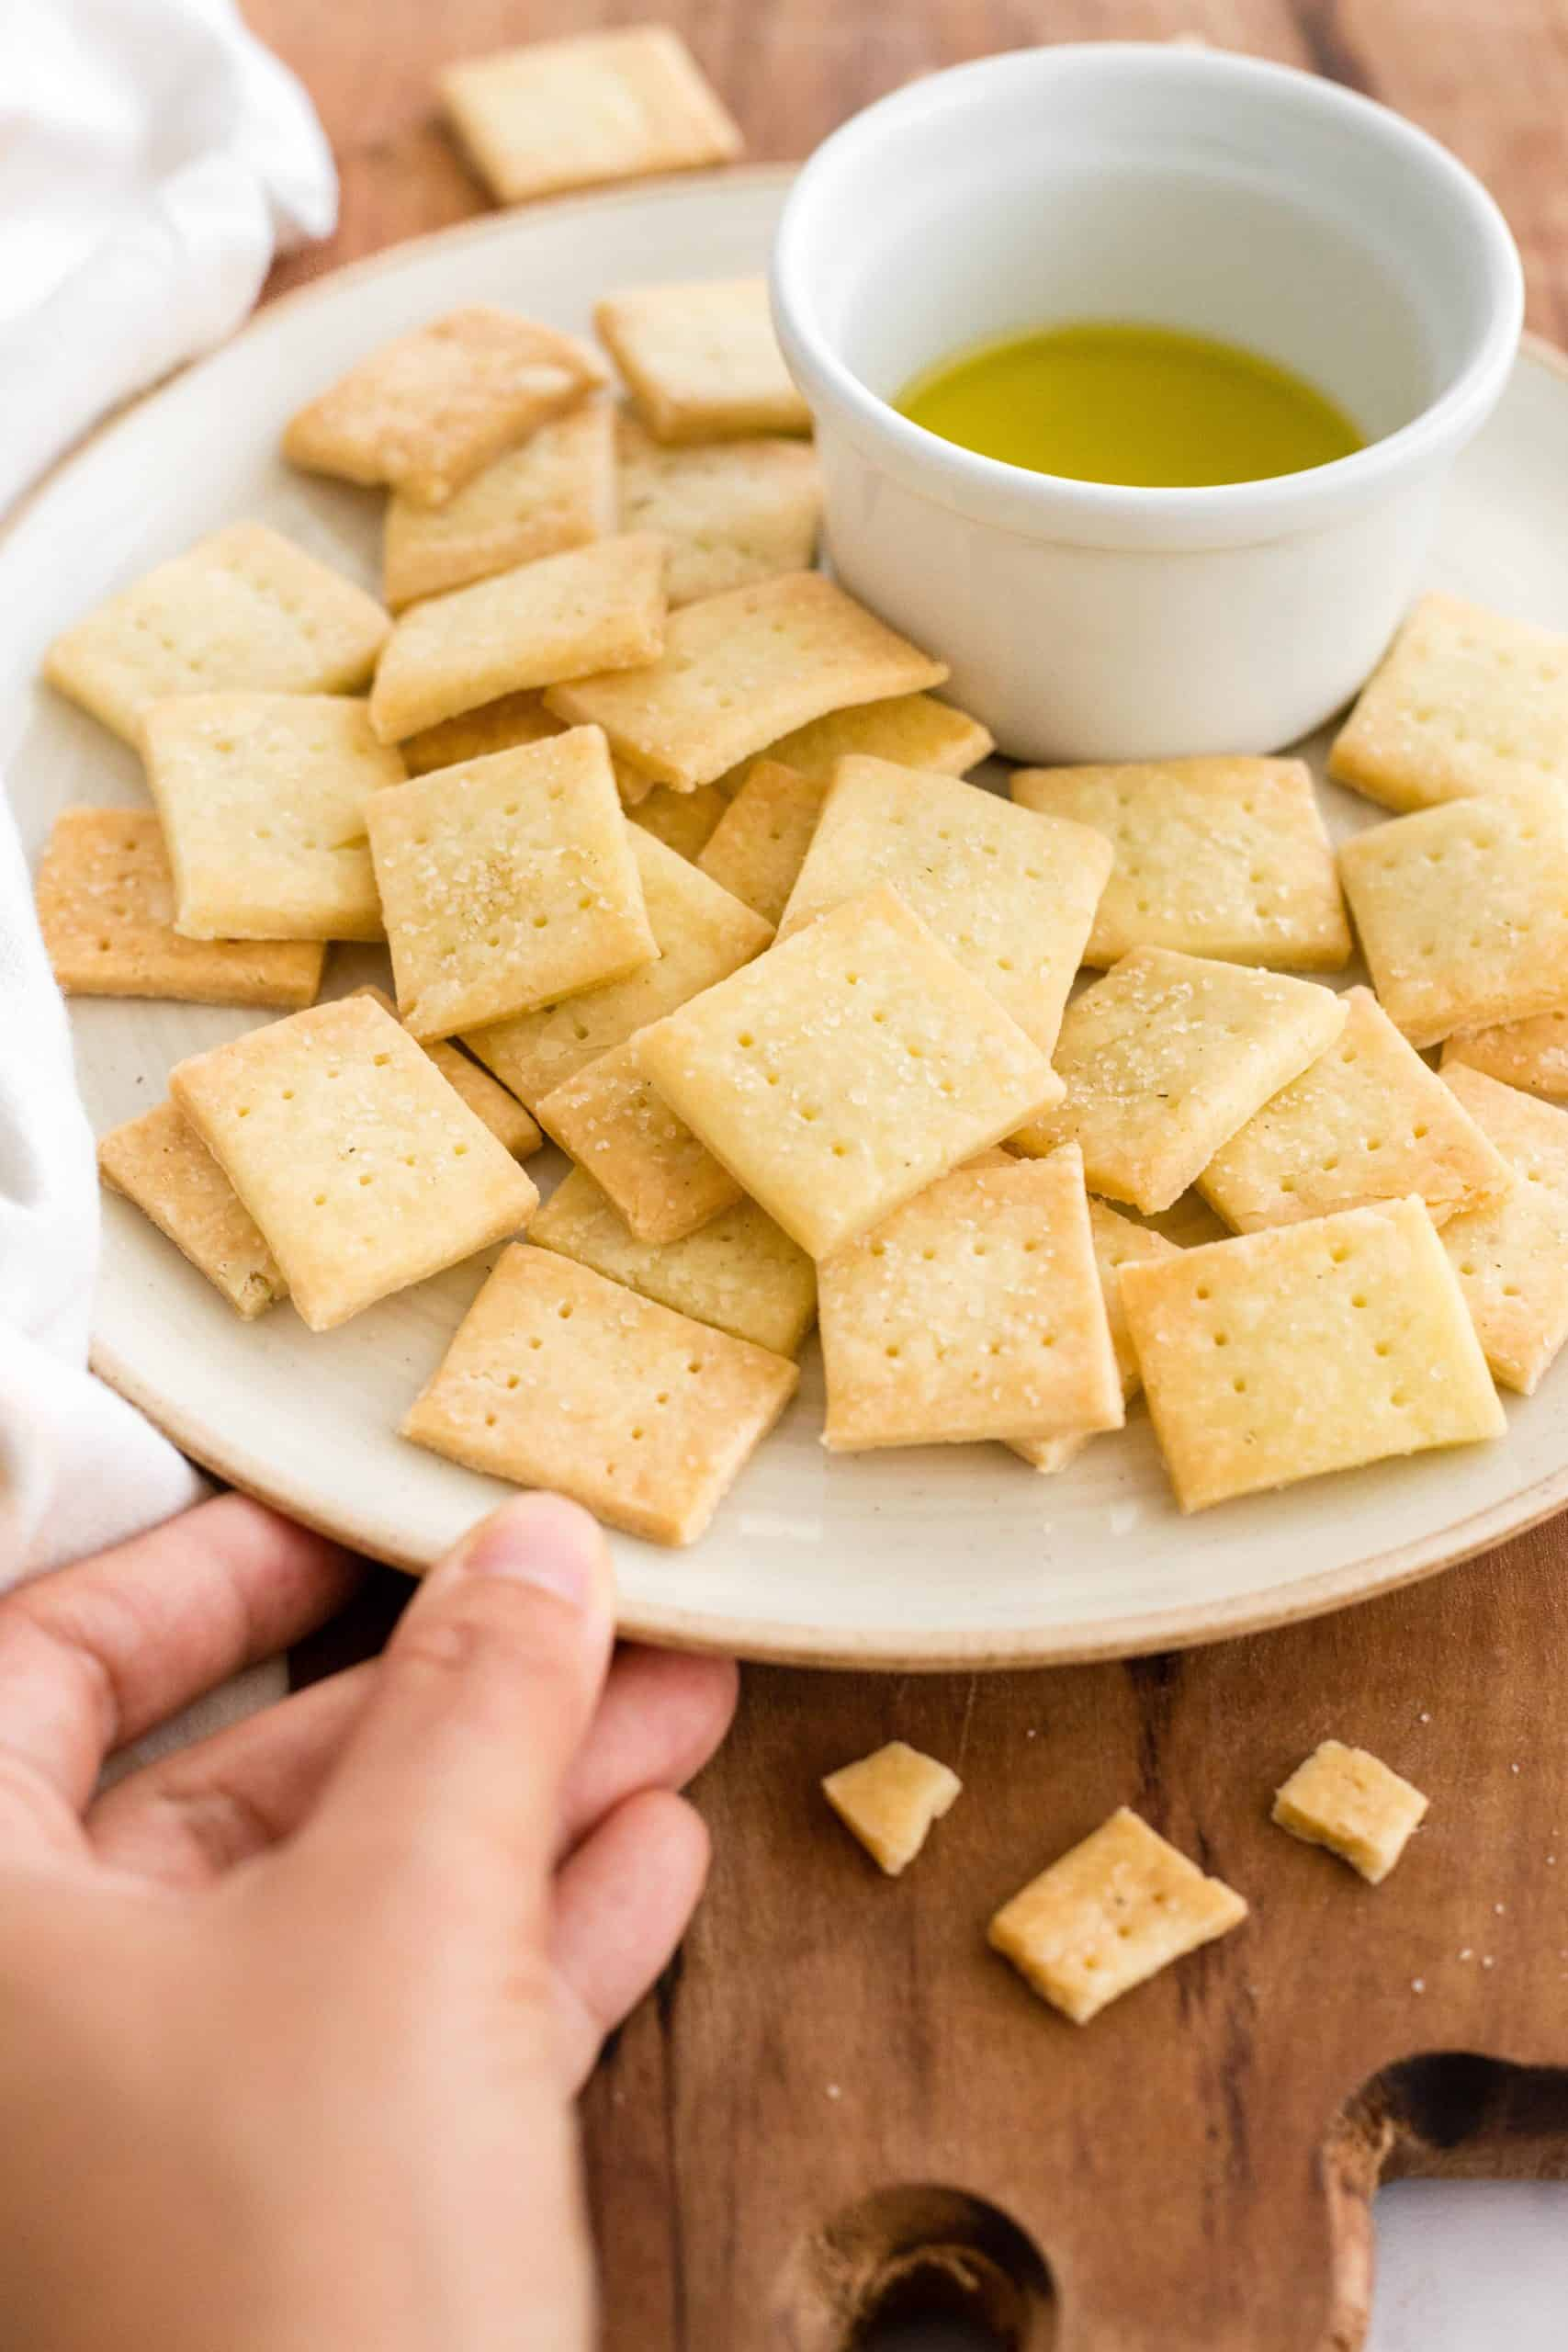 Hand holding a plate of crackers with olive oil.